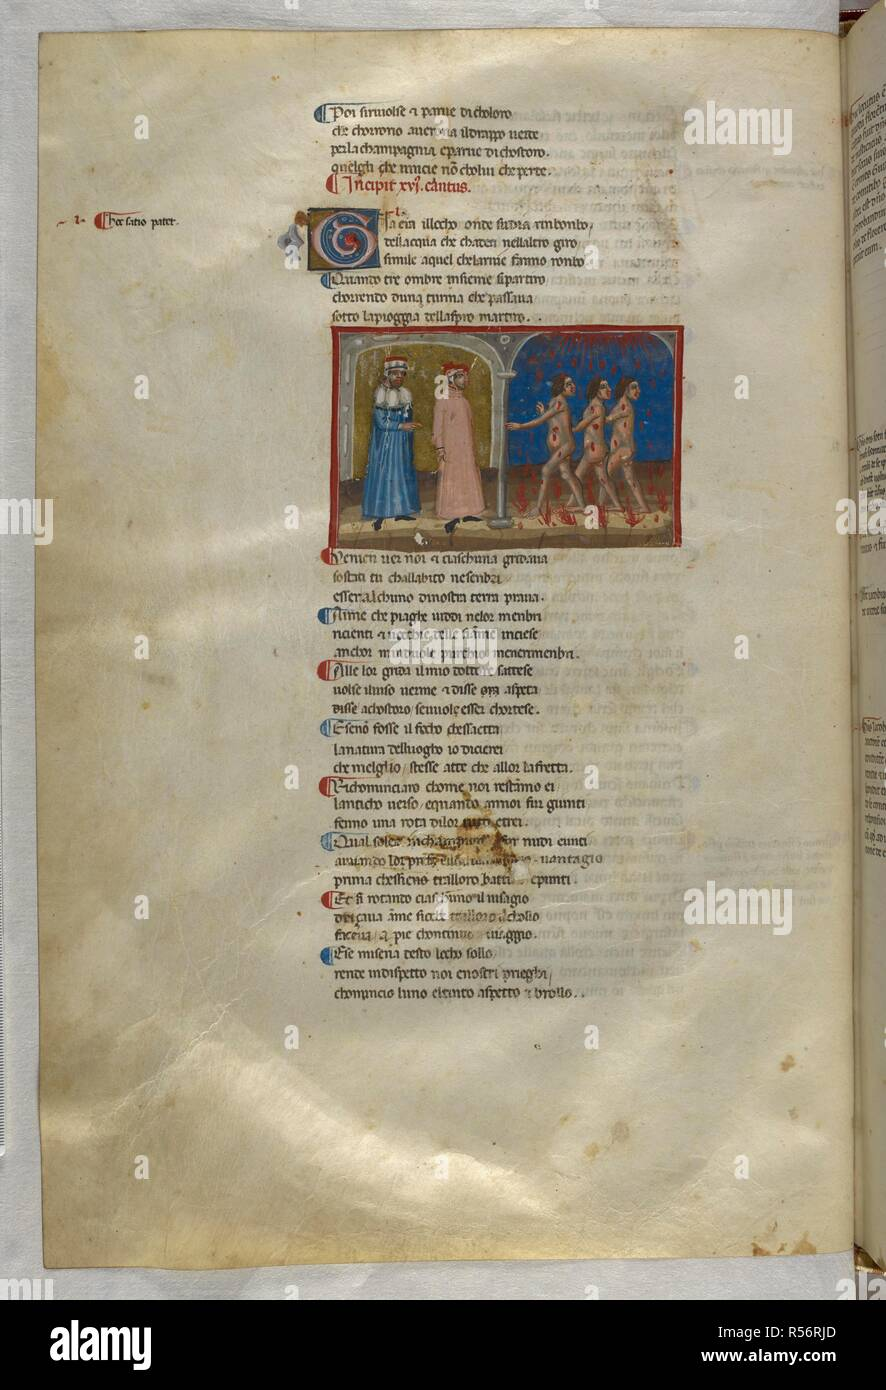 Inferno: Three illustrious Florentines tormented by fiery rain. Dante Alighieri, Divina Commedia ( The Divine Comedy ), with a commentary in Latin. 1st half of the 14th century. Source: Egerton 943, f.28v. Language: Italian, Latin. - Stock Image